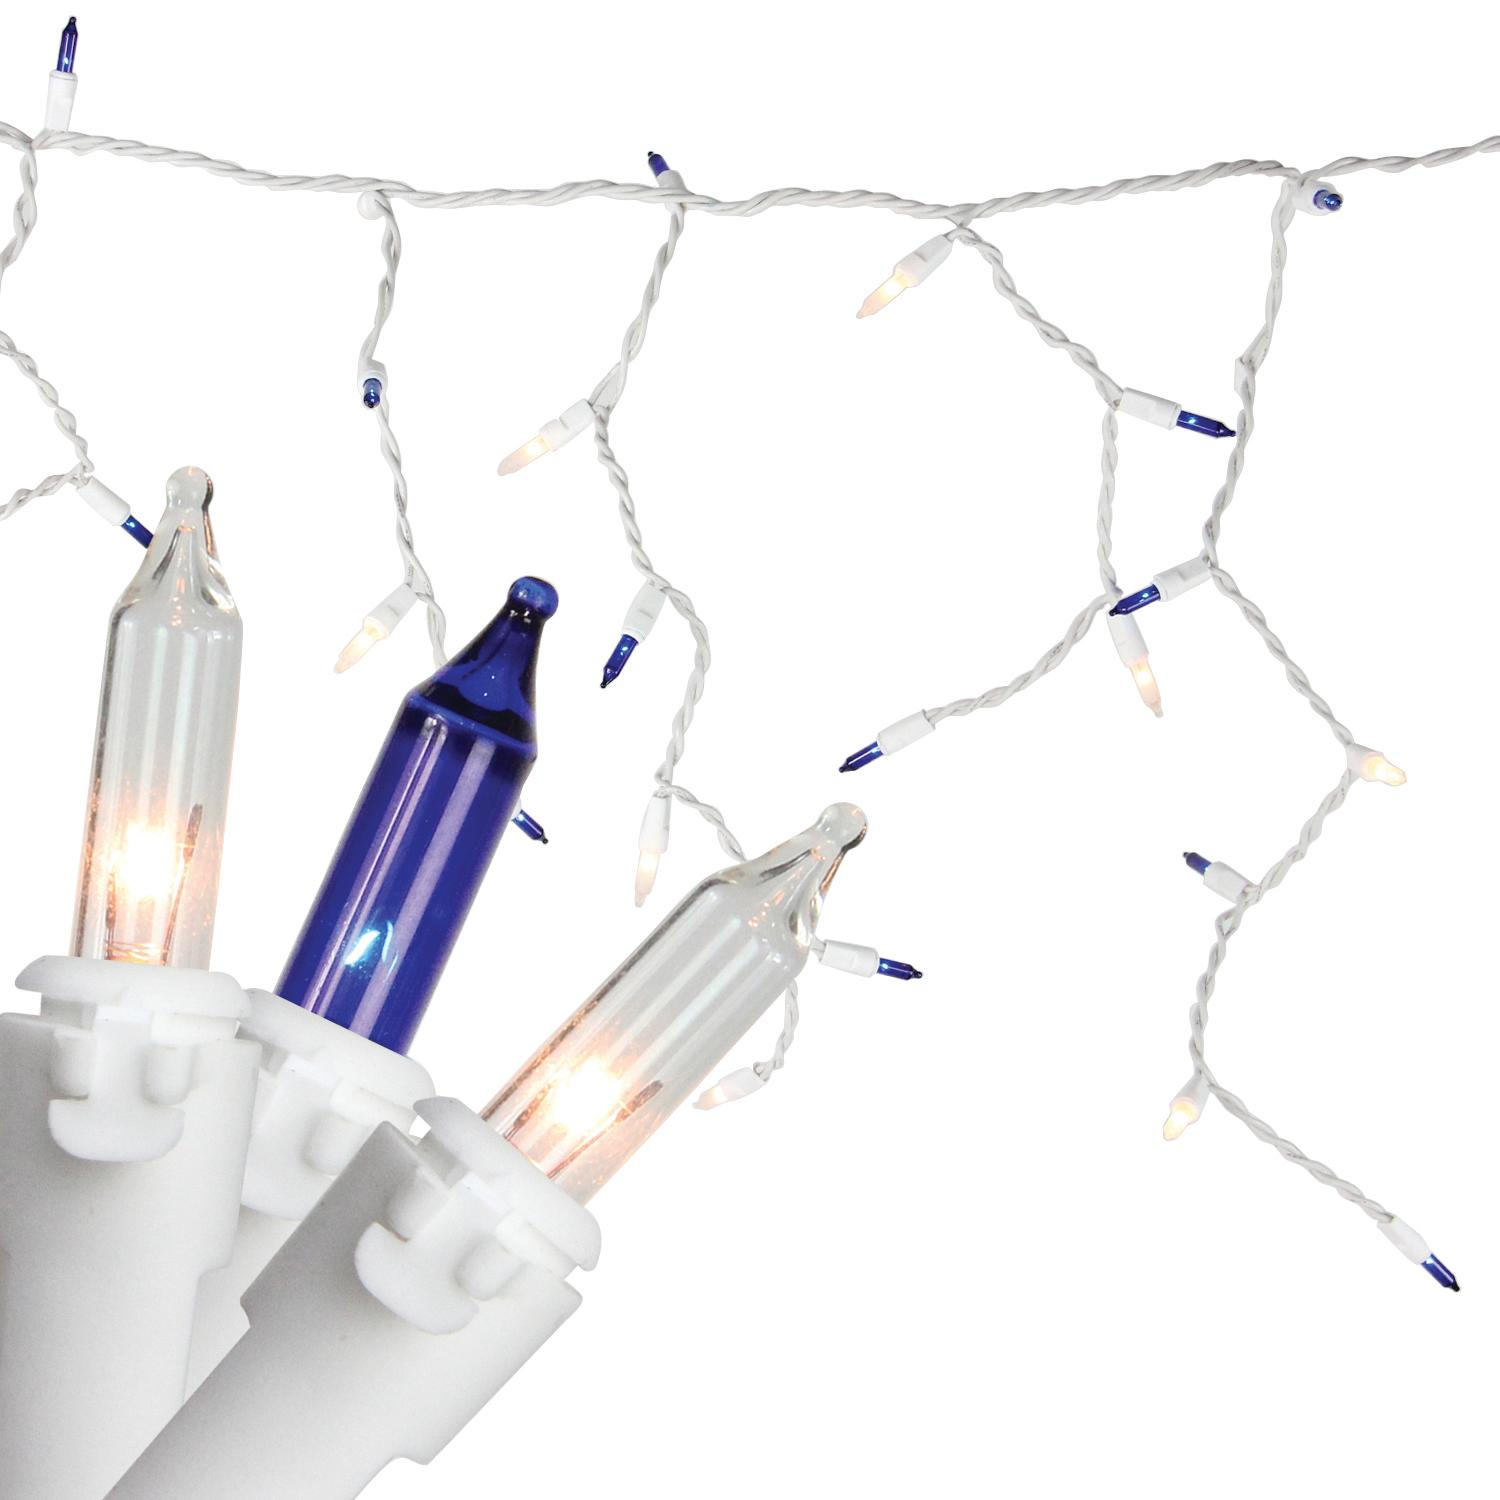 "Set of 150 Blue & Clear Mini Icicle Christmas Lights 3"" Spacing - White Wire"